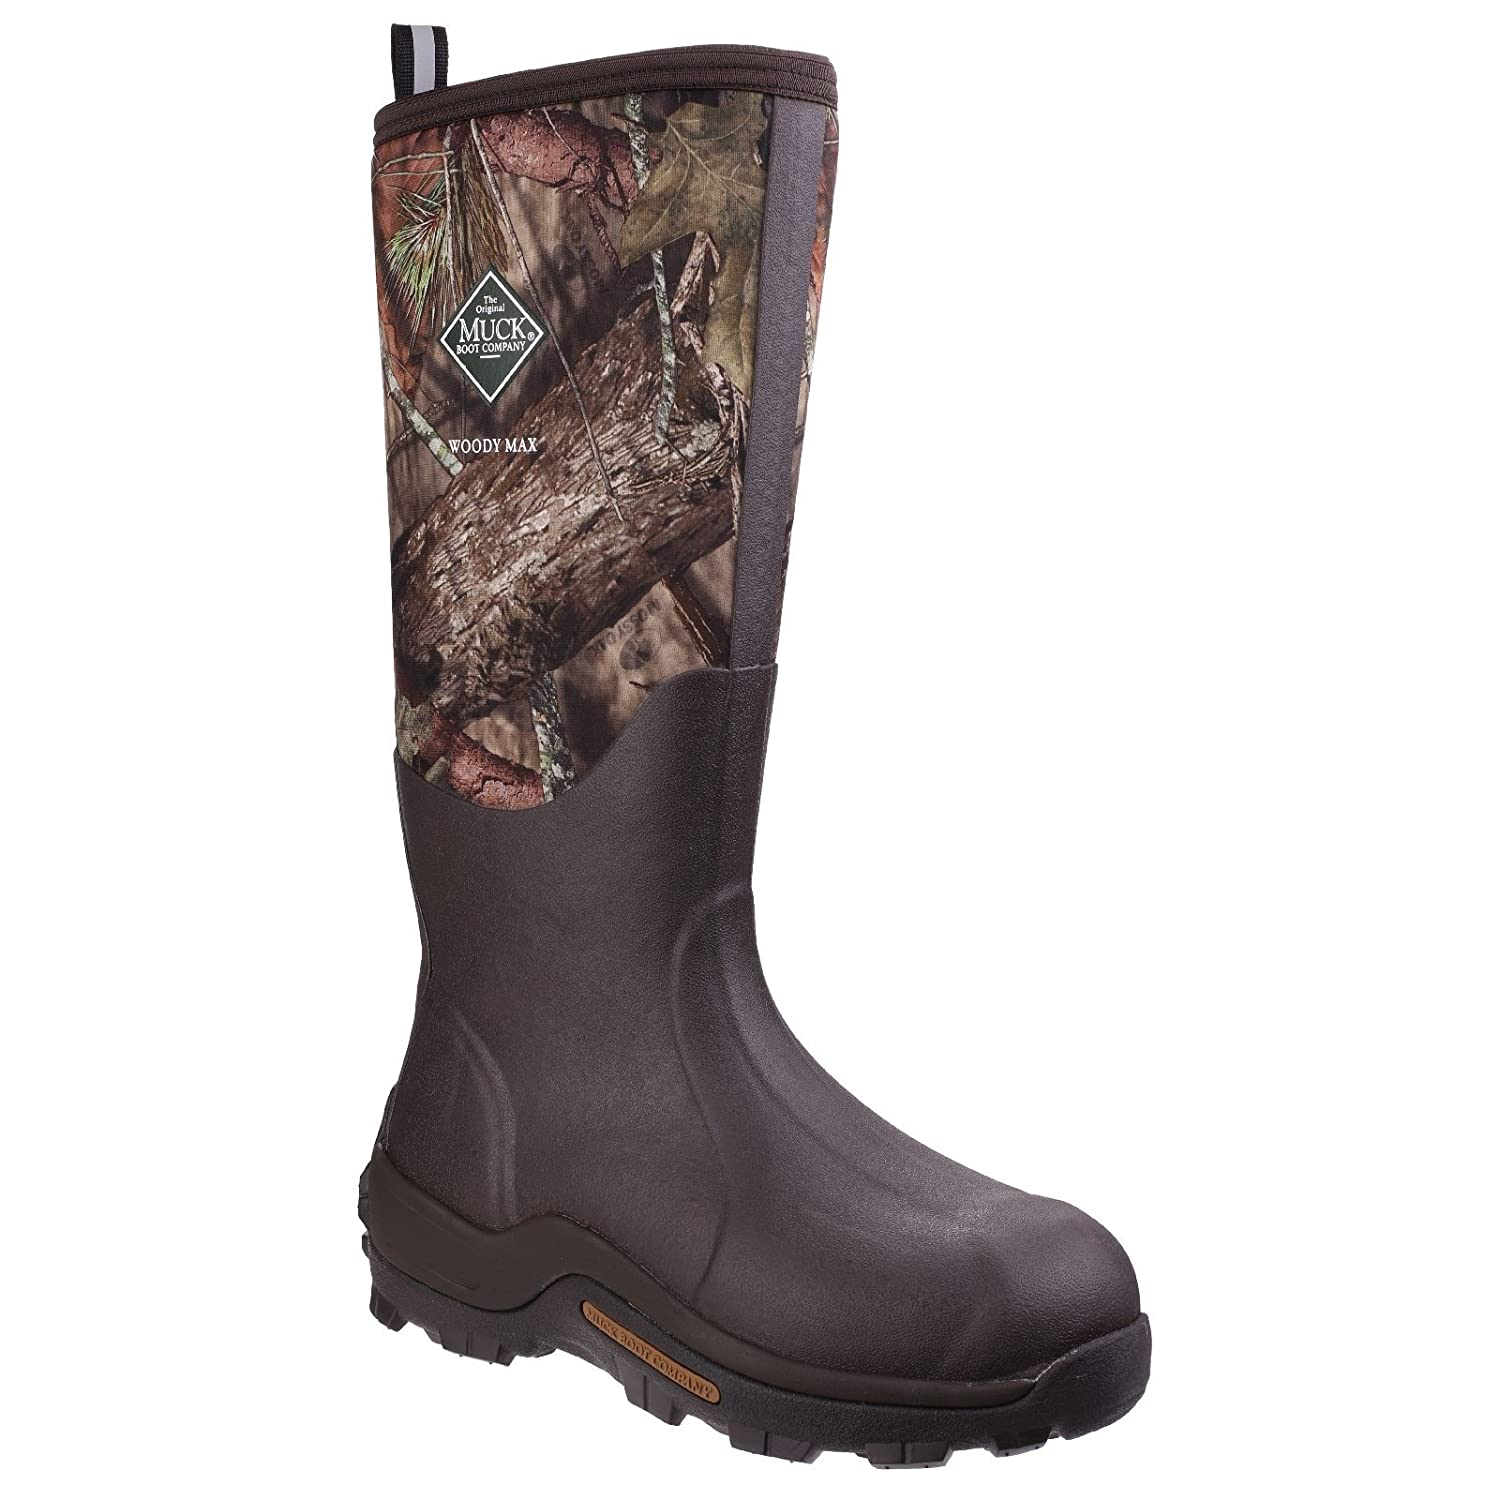 Muck Boot Unisex Woody Max Cold-Conditions Hunting Boot